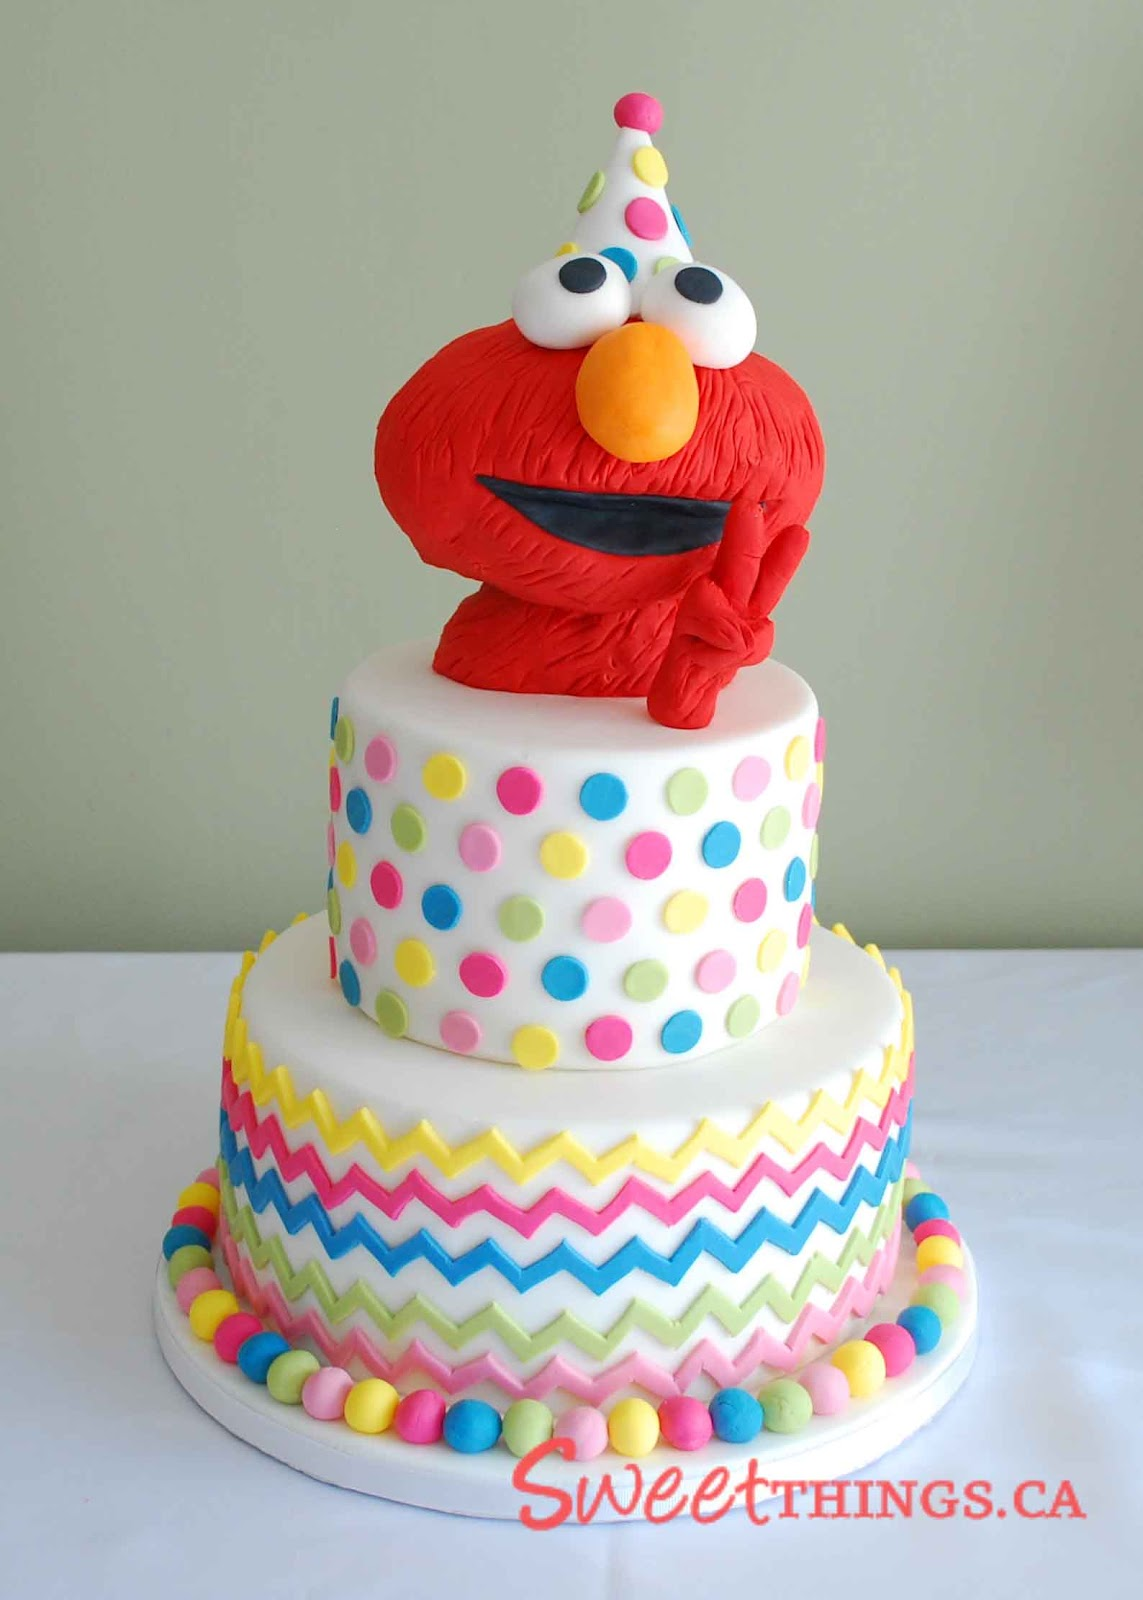 2nd Year Birthday Cake Designs For Baby Girl : SweetThings: 2nd Birthday Cake: Elmo Cake